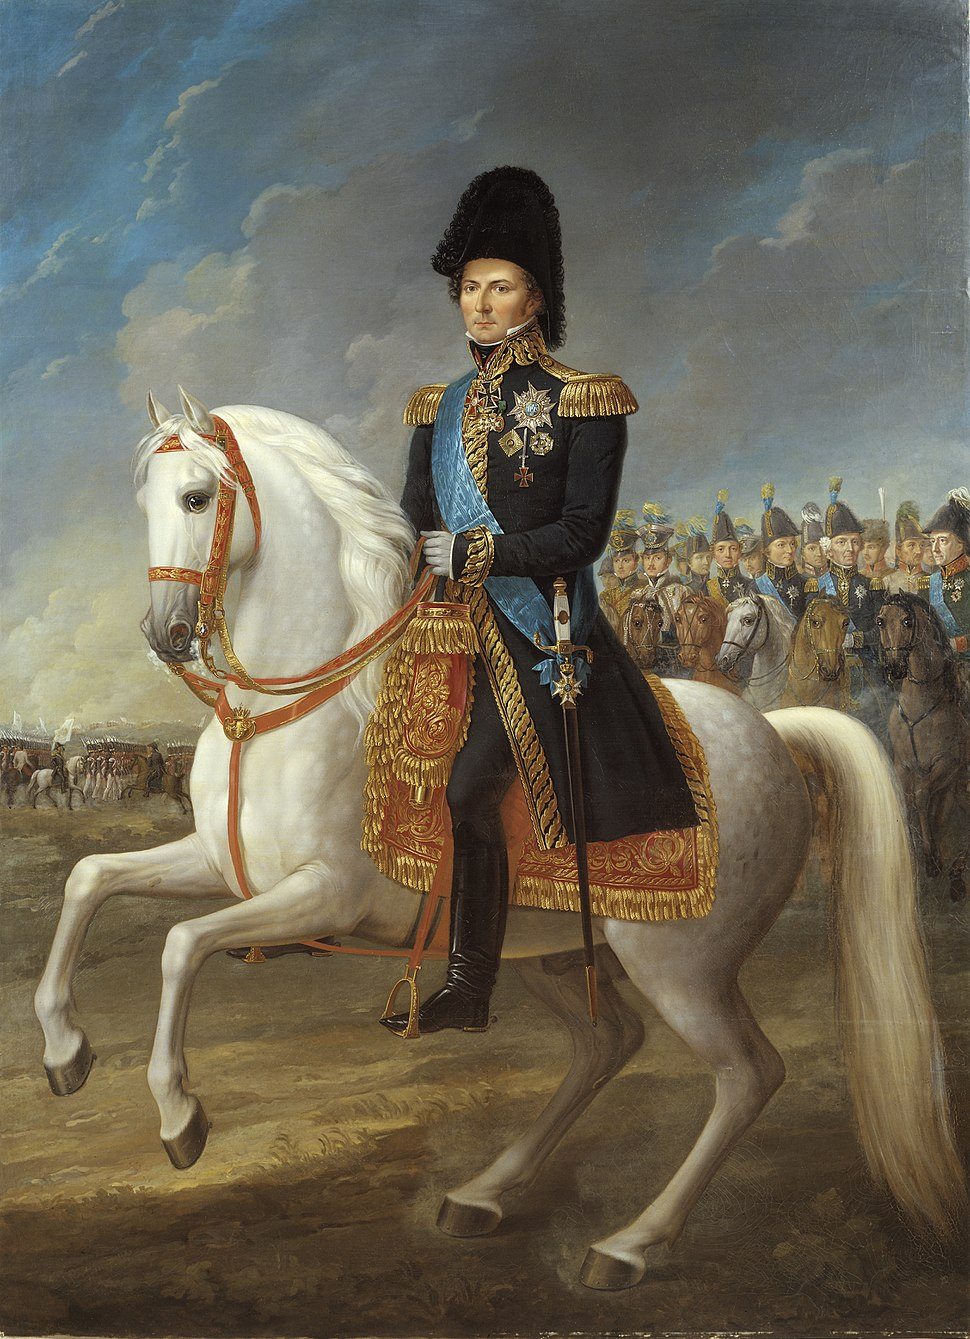 Karl XIV Johan, king of Sweden and Norway, painted by Fredric Westin